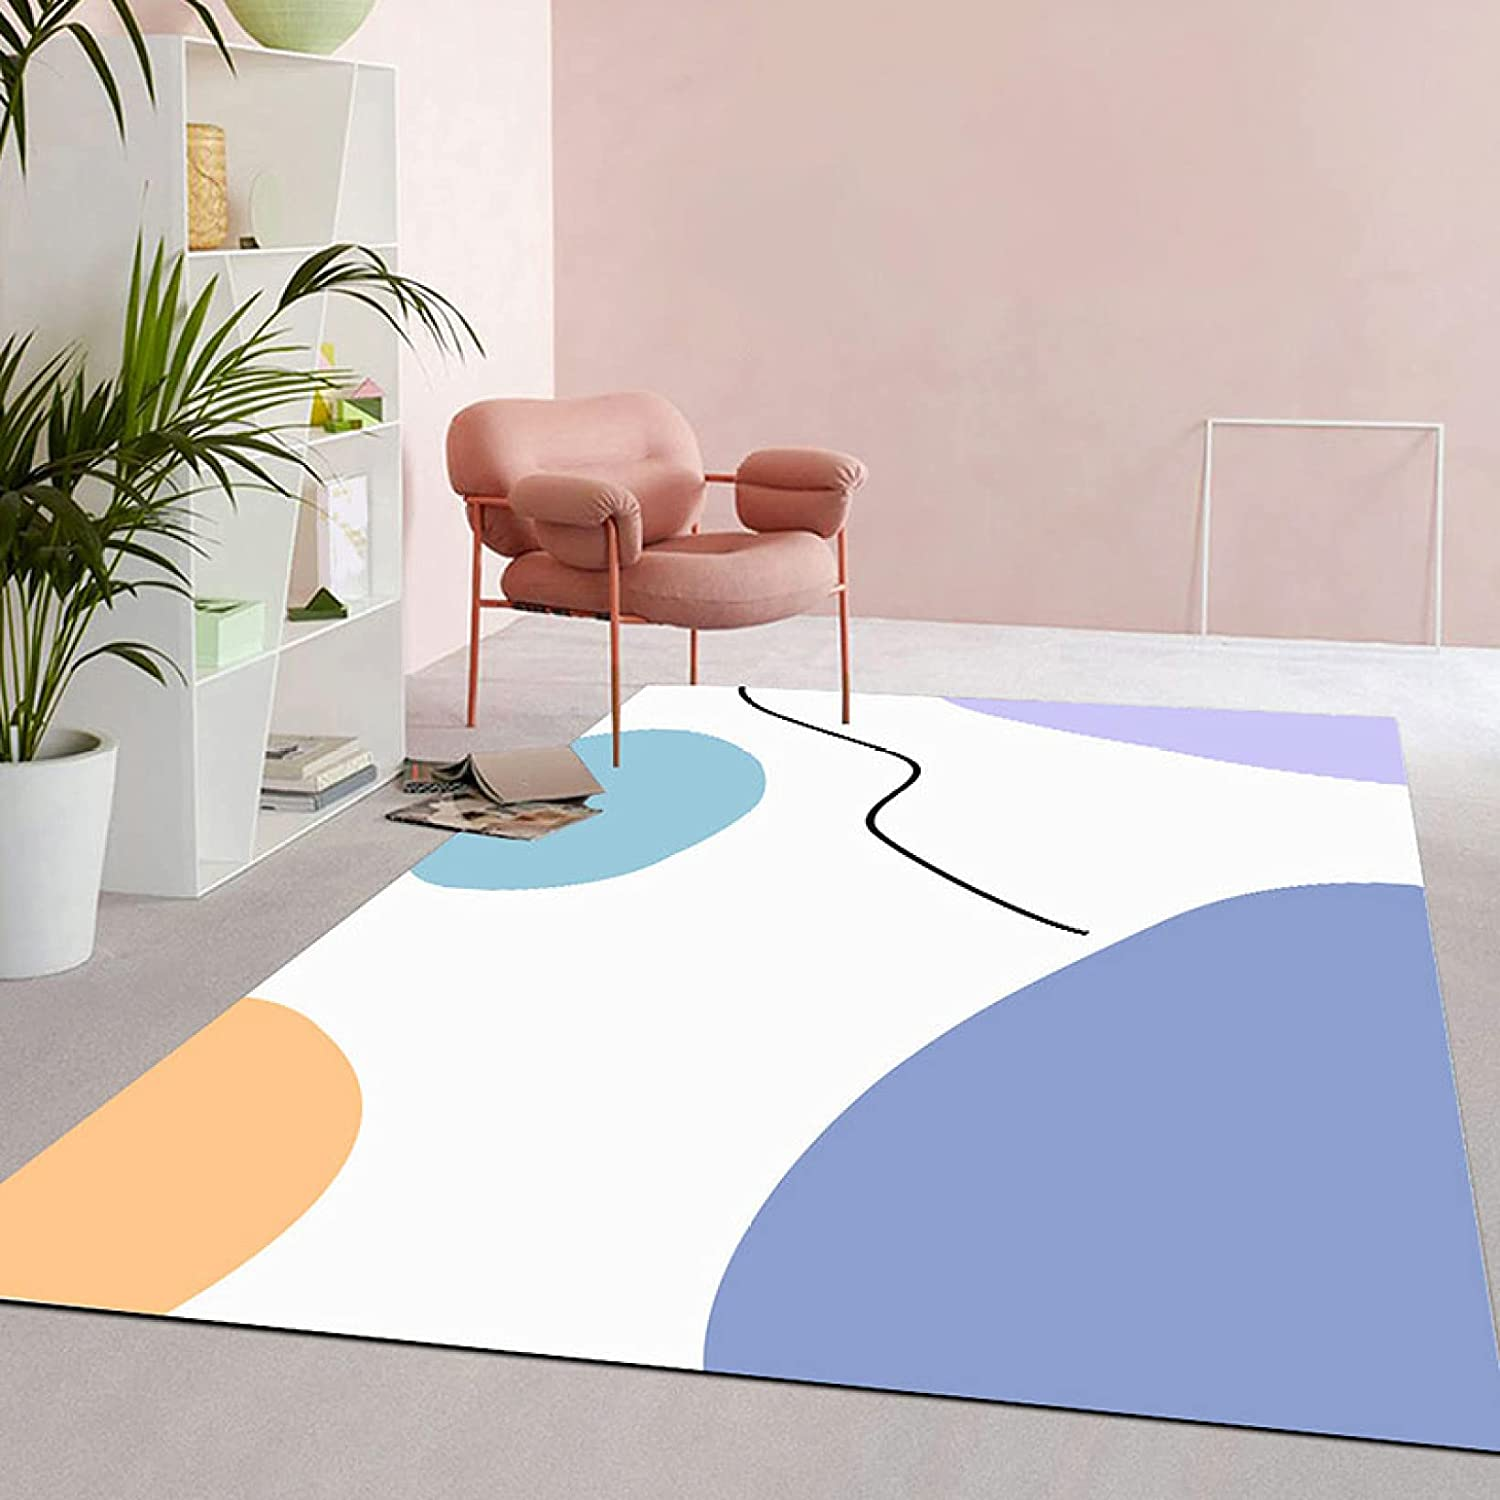 Abstract Topics on TV Ranking TOP4 Floor Rug Fluffy Soft Bedroom Carpets R Living for Area